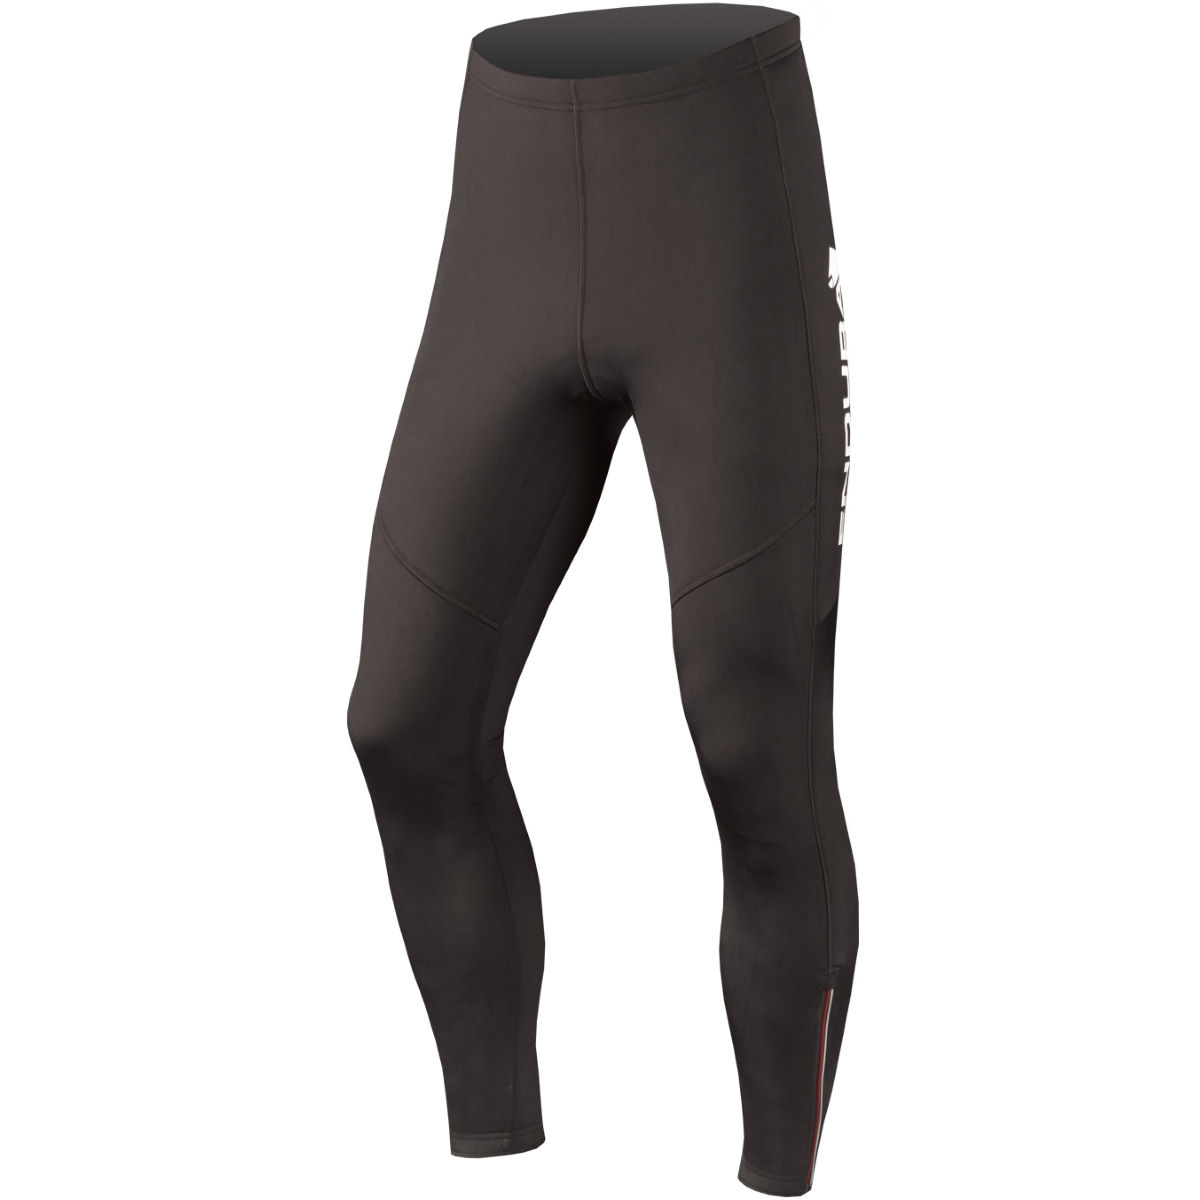 Cuissard long Endura Thermolite® - M Noir Cuissards longs de vélo